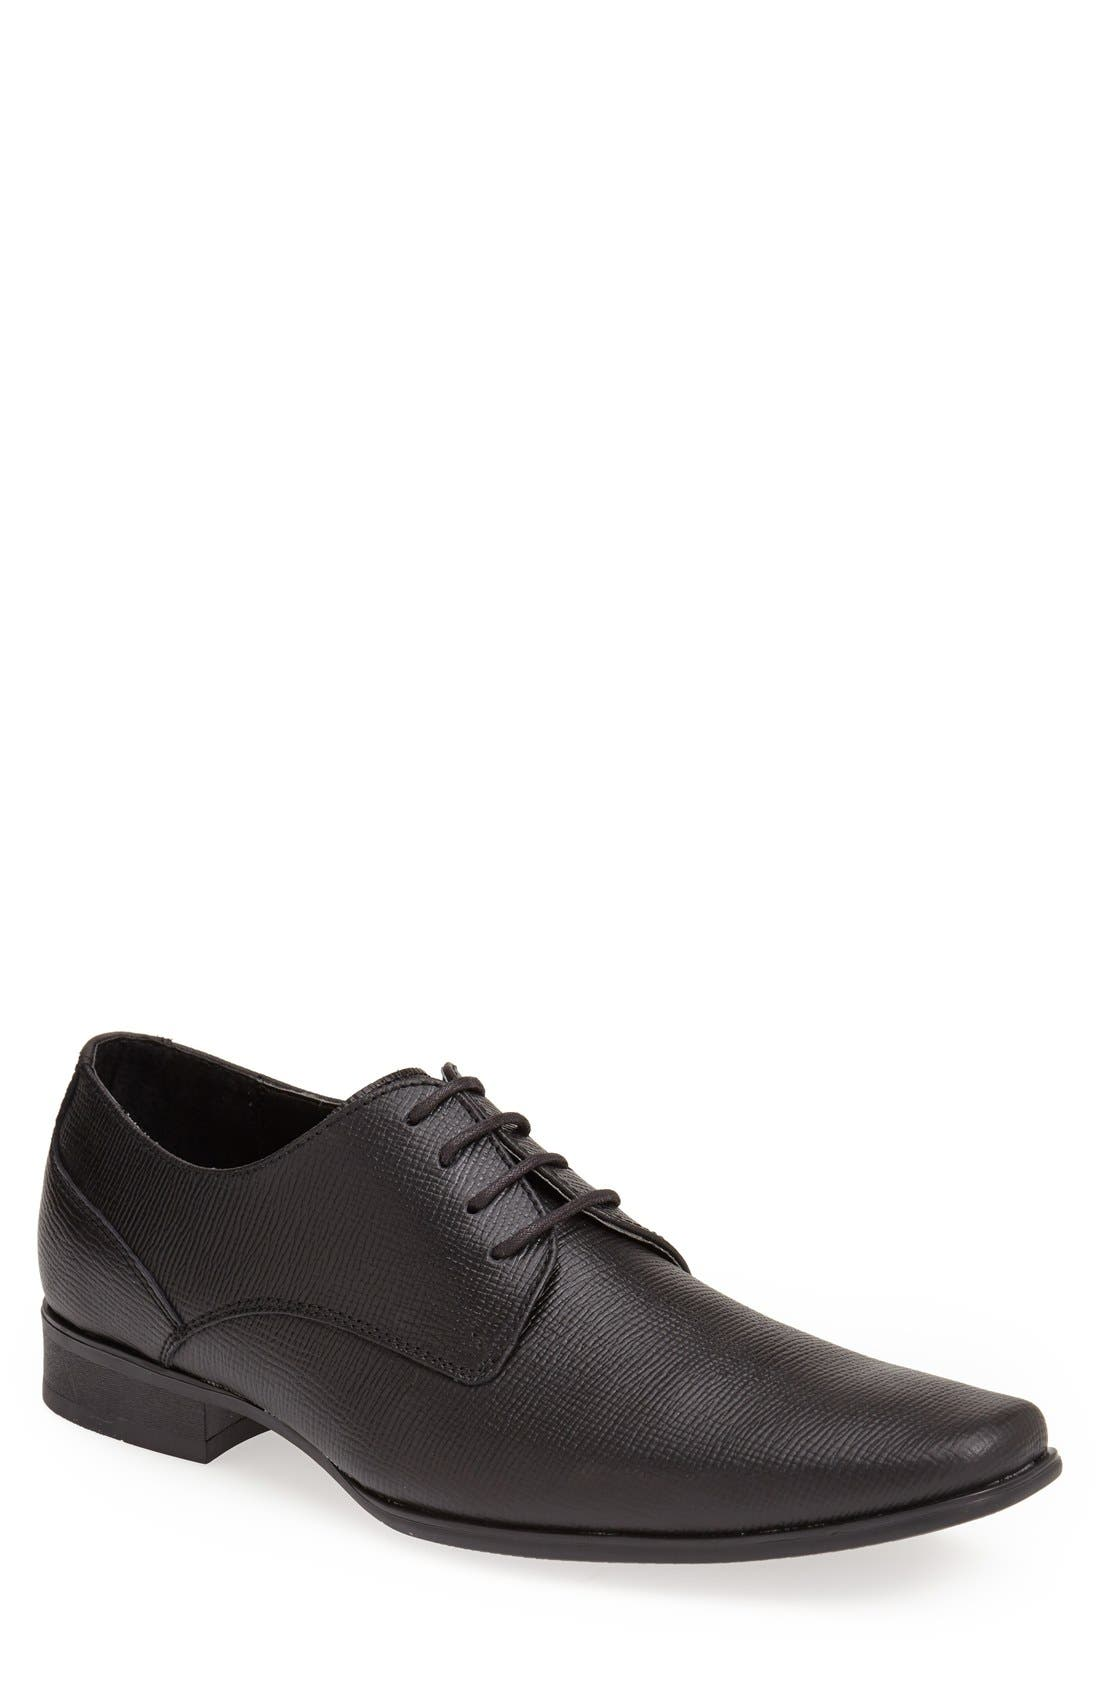 Alternate Image 1 Selected - Calvin Klein 'Brodie' Plain Toe Derby (Men)